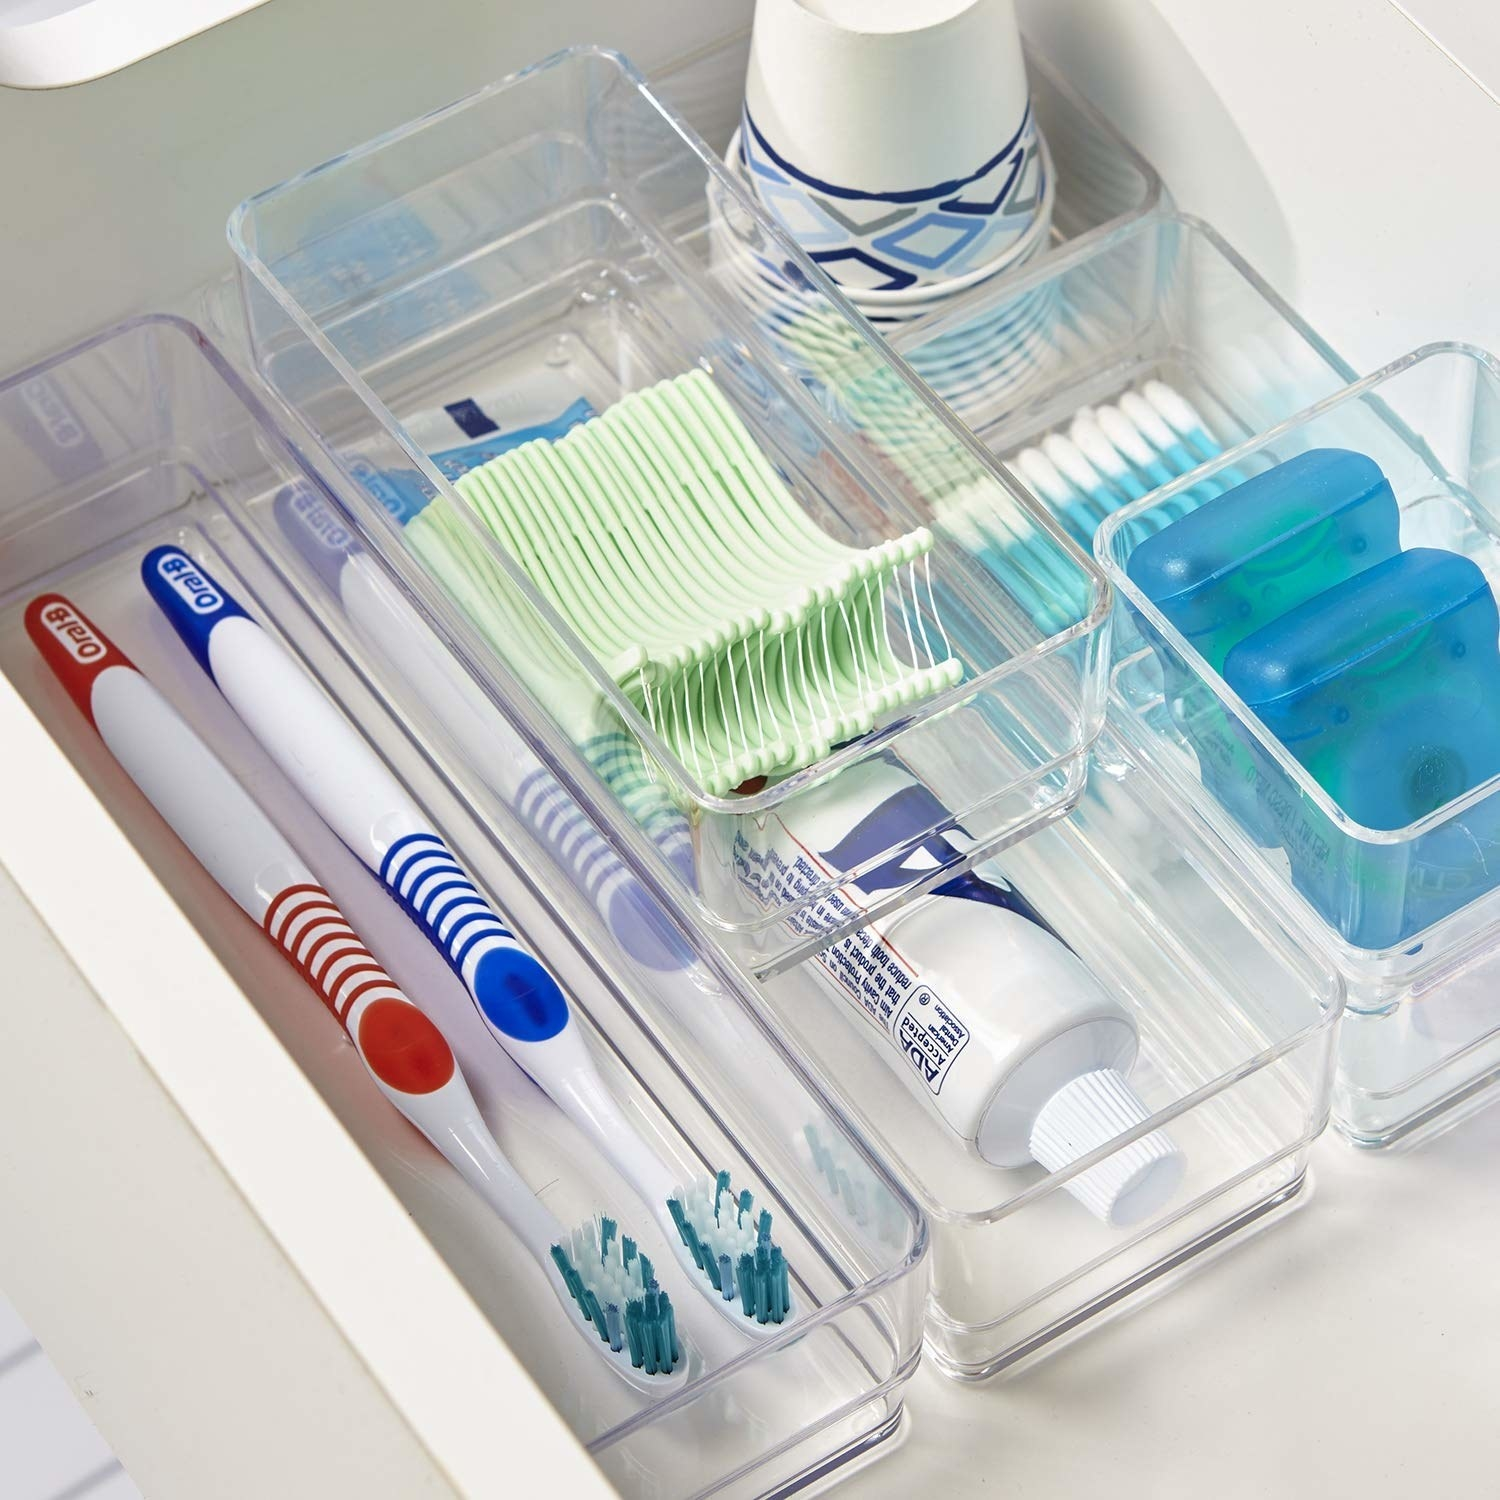 """Promising review: """"Great little storage devices that make opening a bathroom drawer a relatively clean experience, rather than a messy five-minute adventure just to find the toothpaste. Nice, sturdy, and lightweight. If you need bathroom drawer organization, these are a great way to go."""" —Haon the GreatGet it from Amazon for $14.99 (for a six-piece set)."""